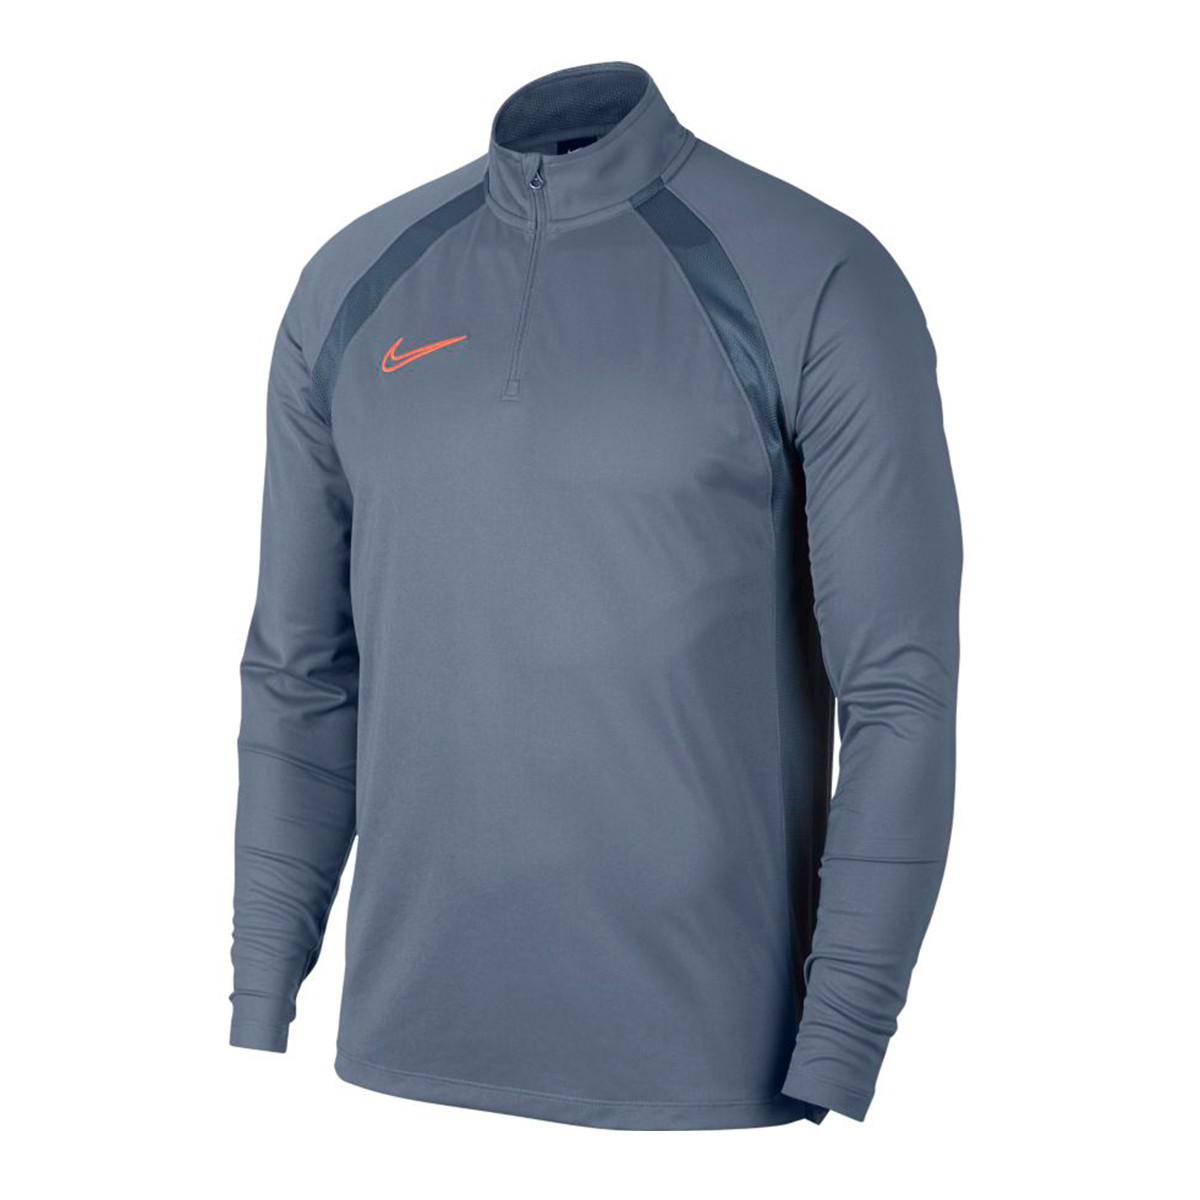 6558e075d Jersey Nike Dry Academy Dril Top Armory blue-Monsoon blue - Football ...